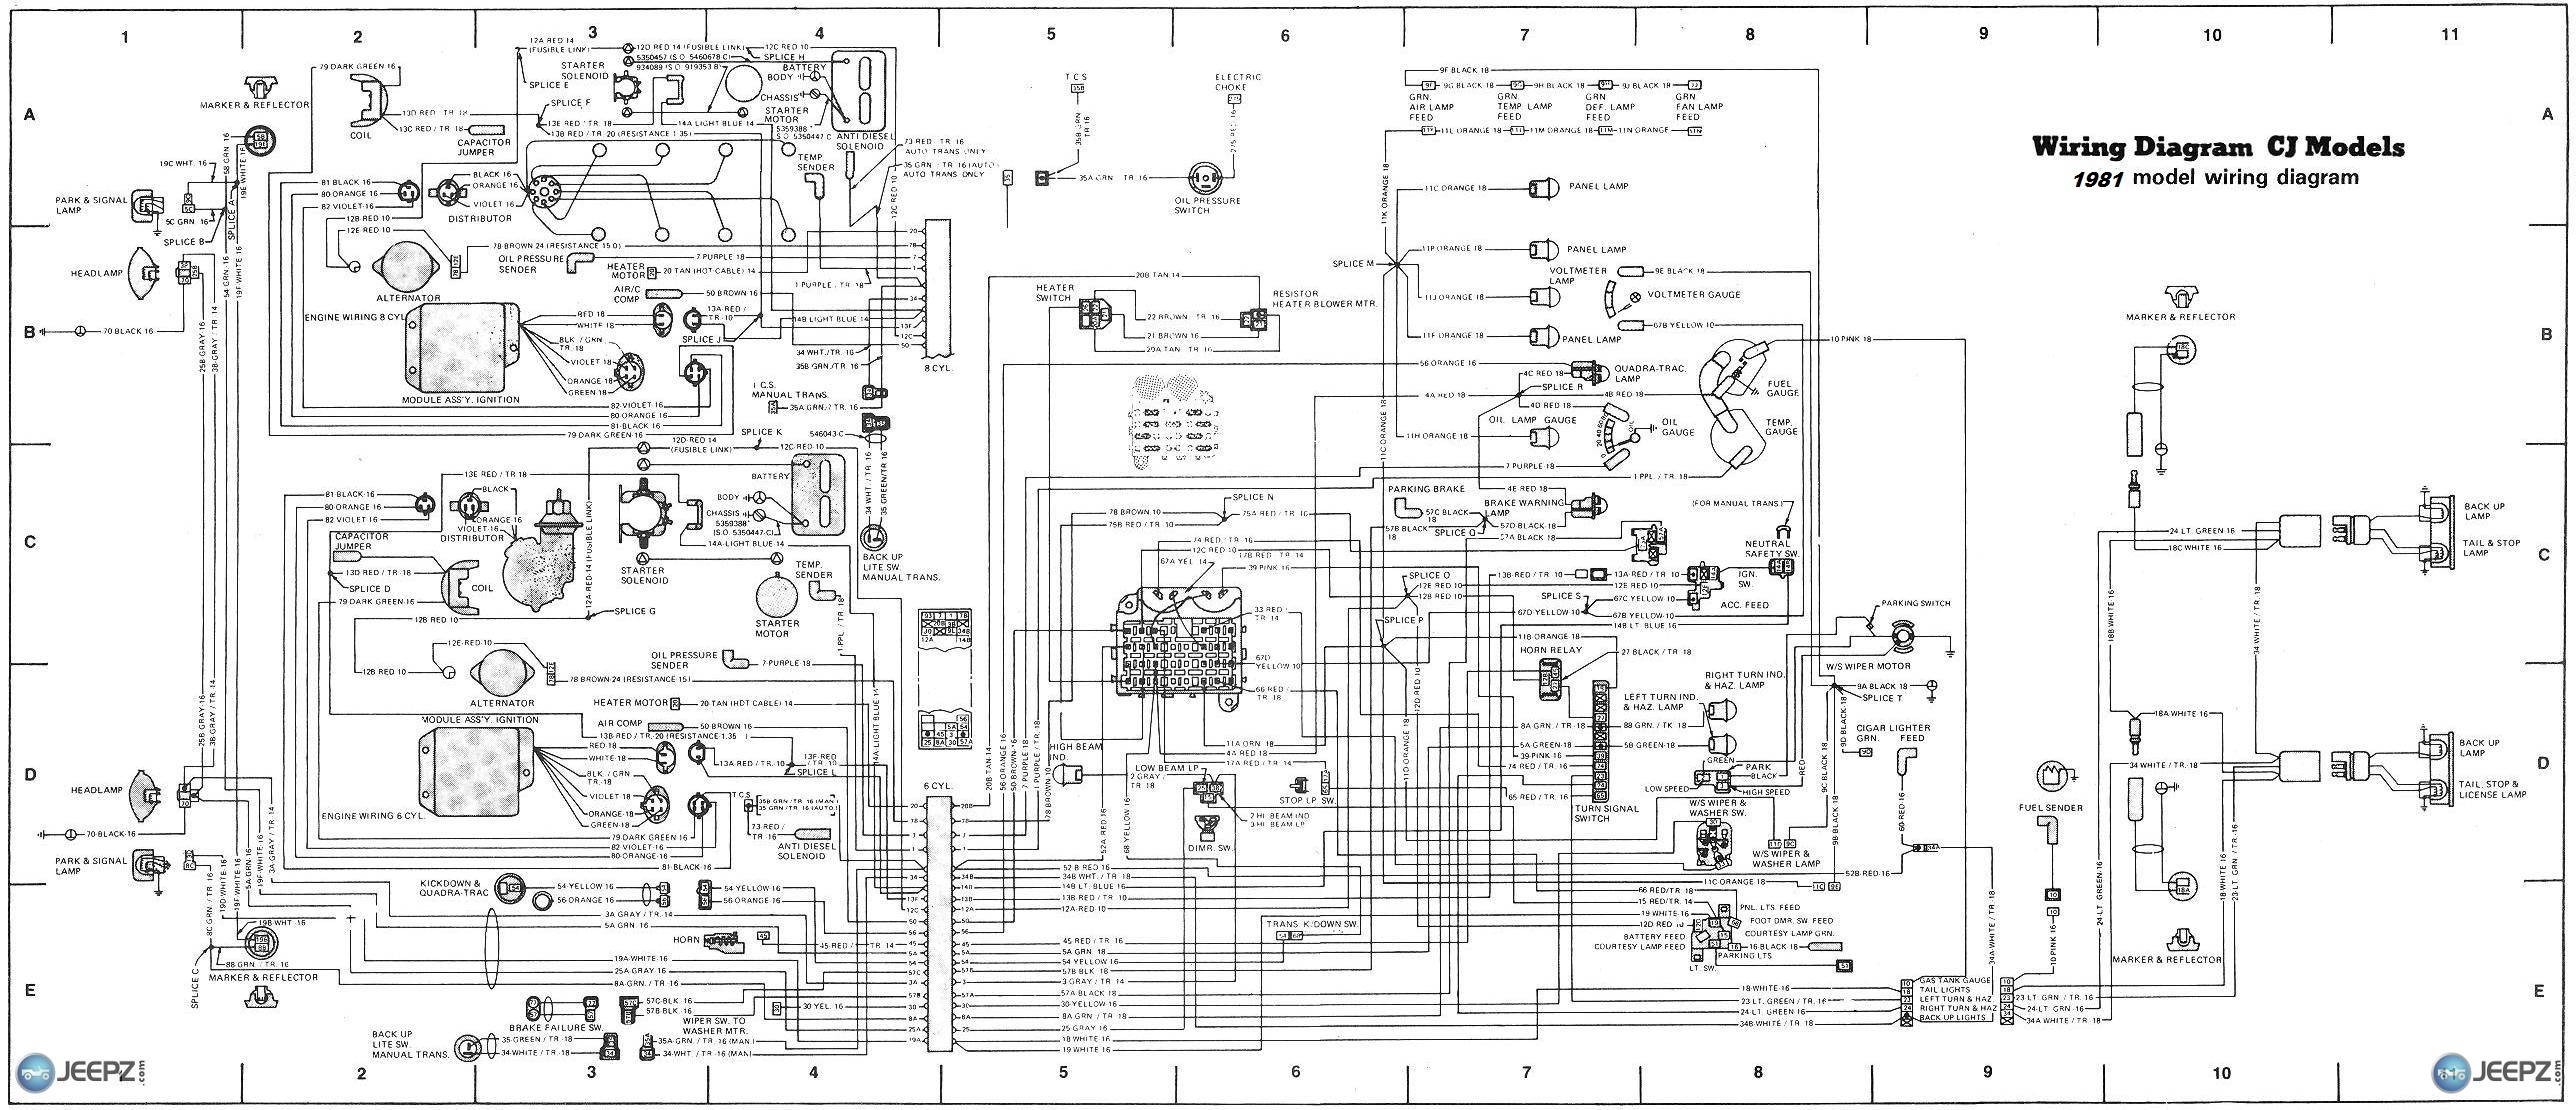 81 Jeep Cj7 Wiring - Wiring Diagram Networks | 1981 Cj7 Duraspark Ii Wiring Harness Painless |  | Wiring Diagram Networks - blogger